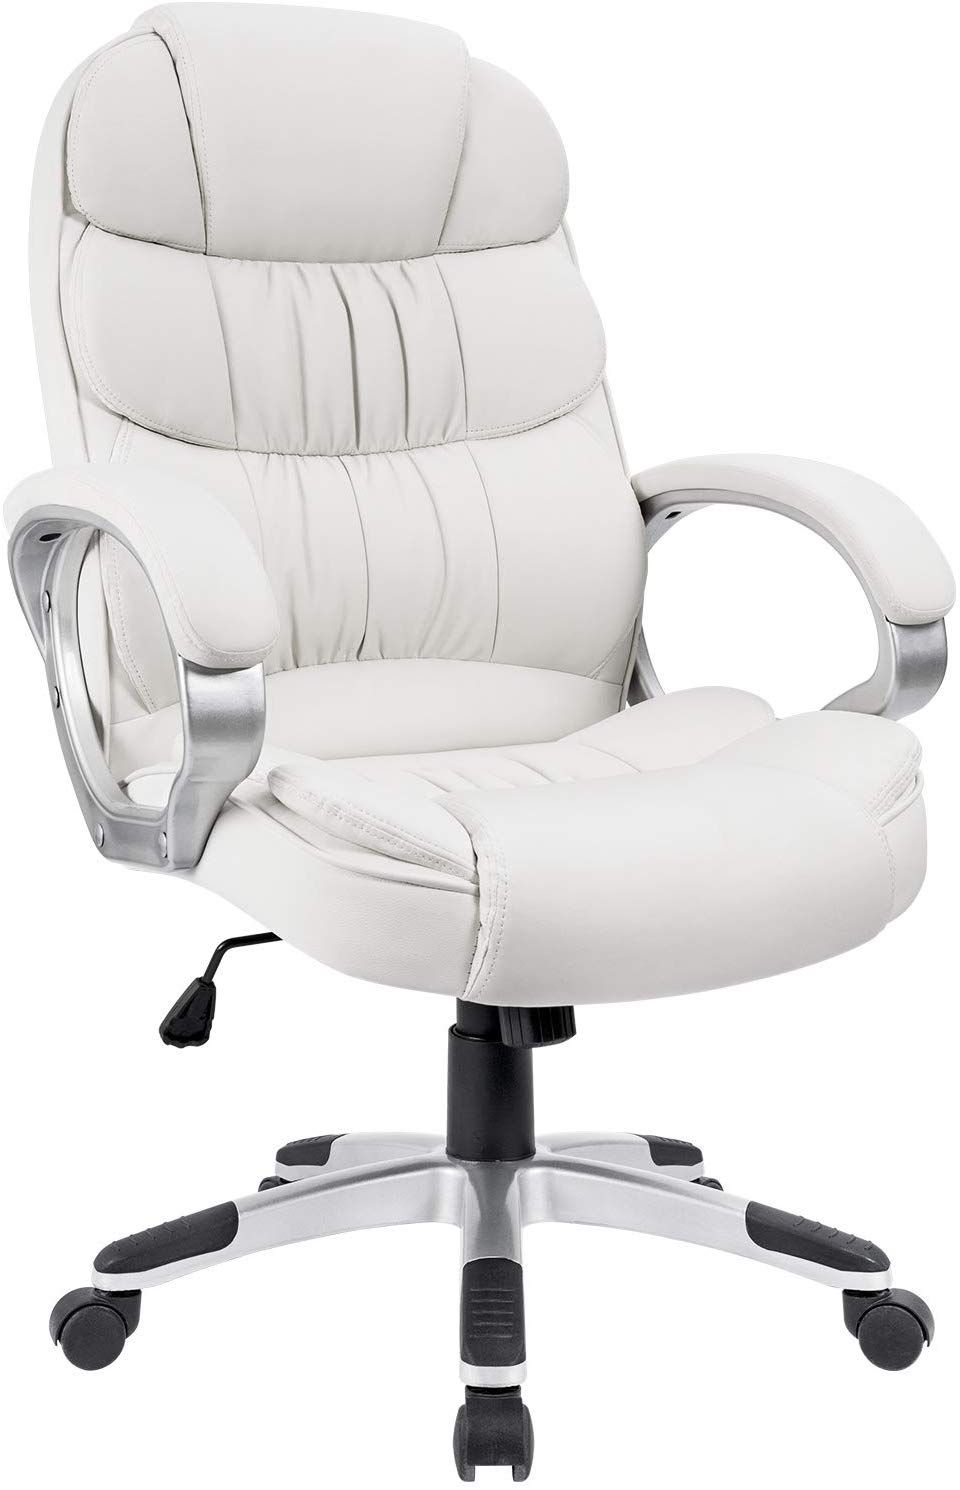 Homall Office Chair High Back Computer Chair Ergonomic Desk Chair Pu Leather Adjustable Height Modern Executive Swivel Task Chair With Padded Armrests And Lumb White Office Chair Ergonomic Desk Chair Comfortable